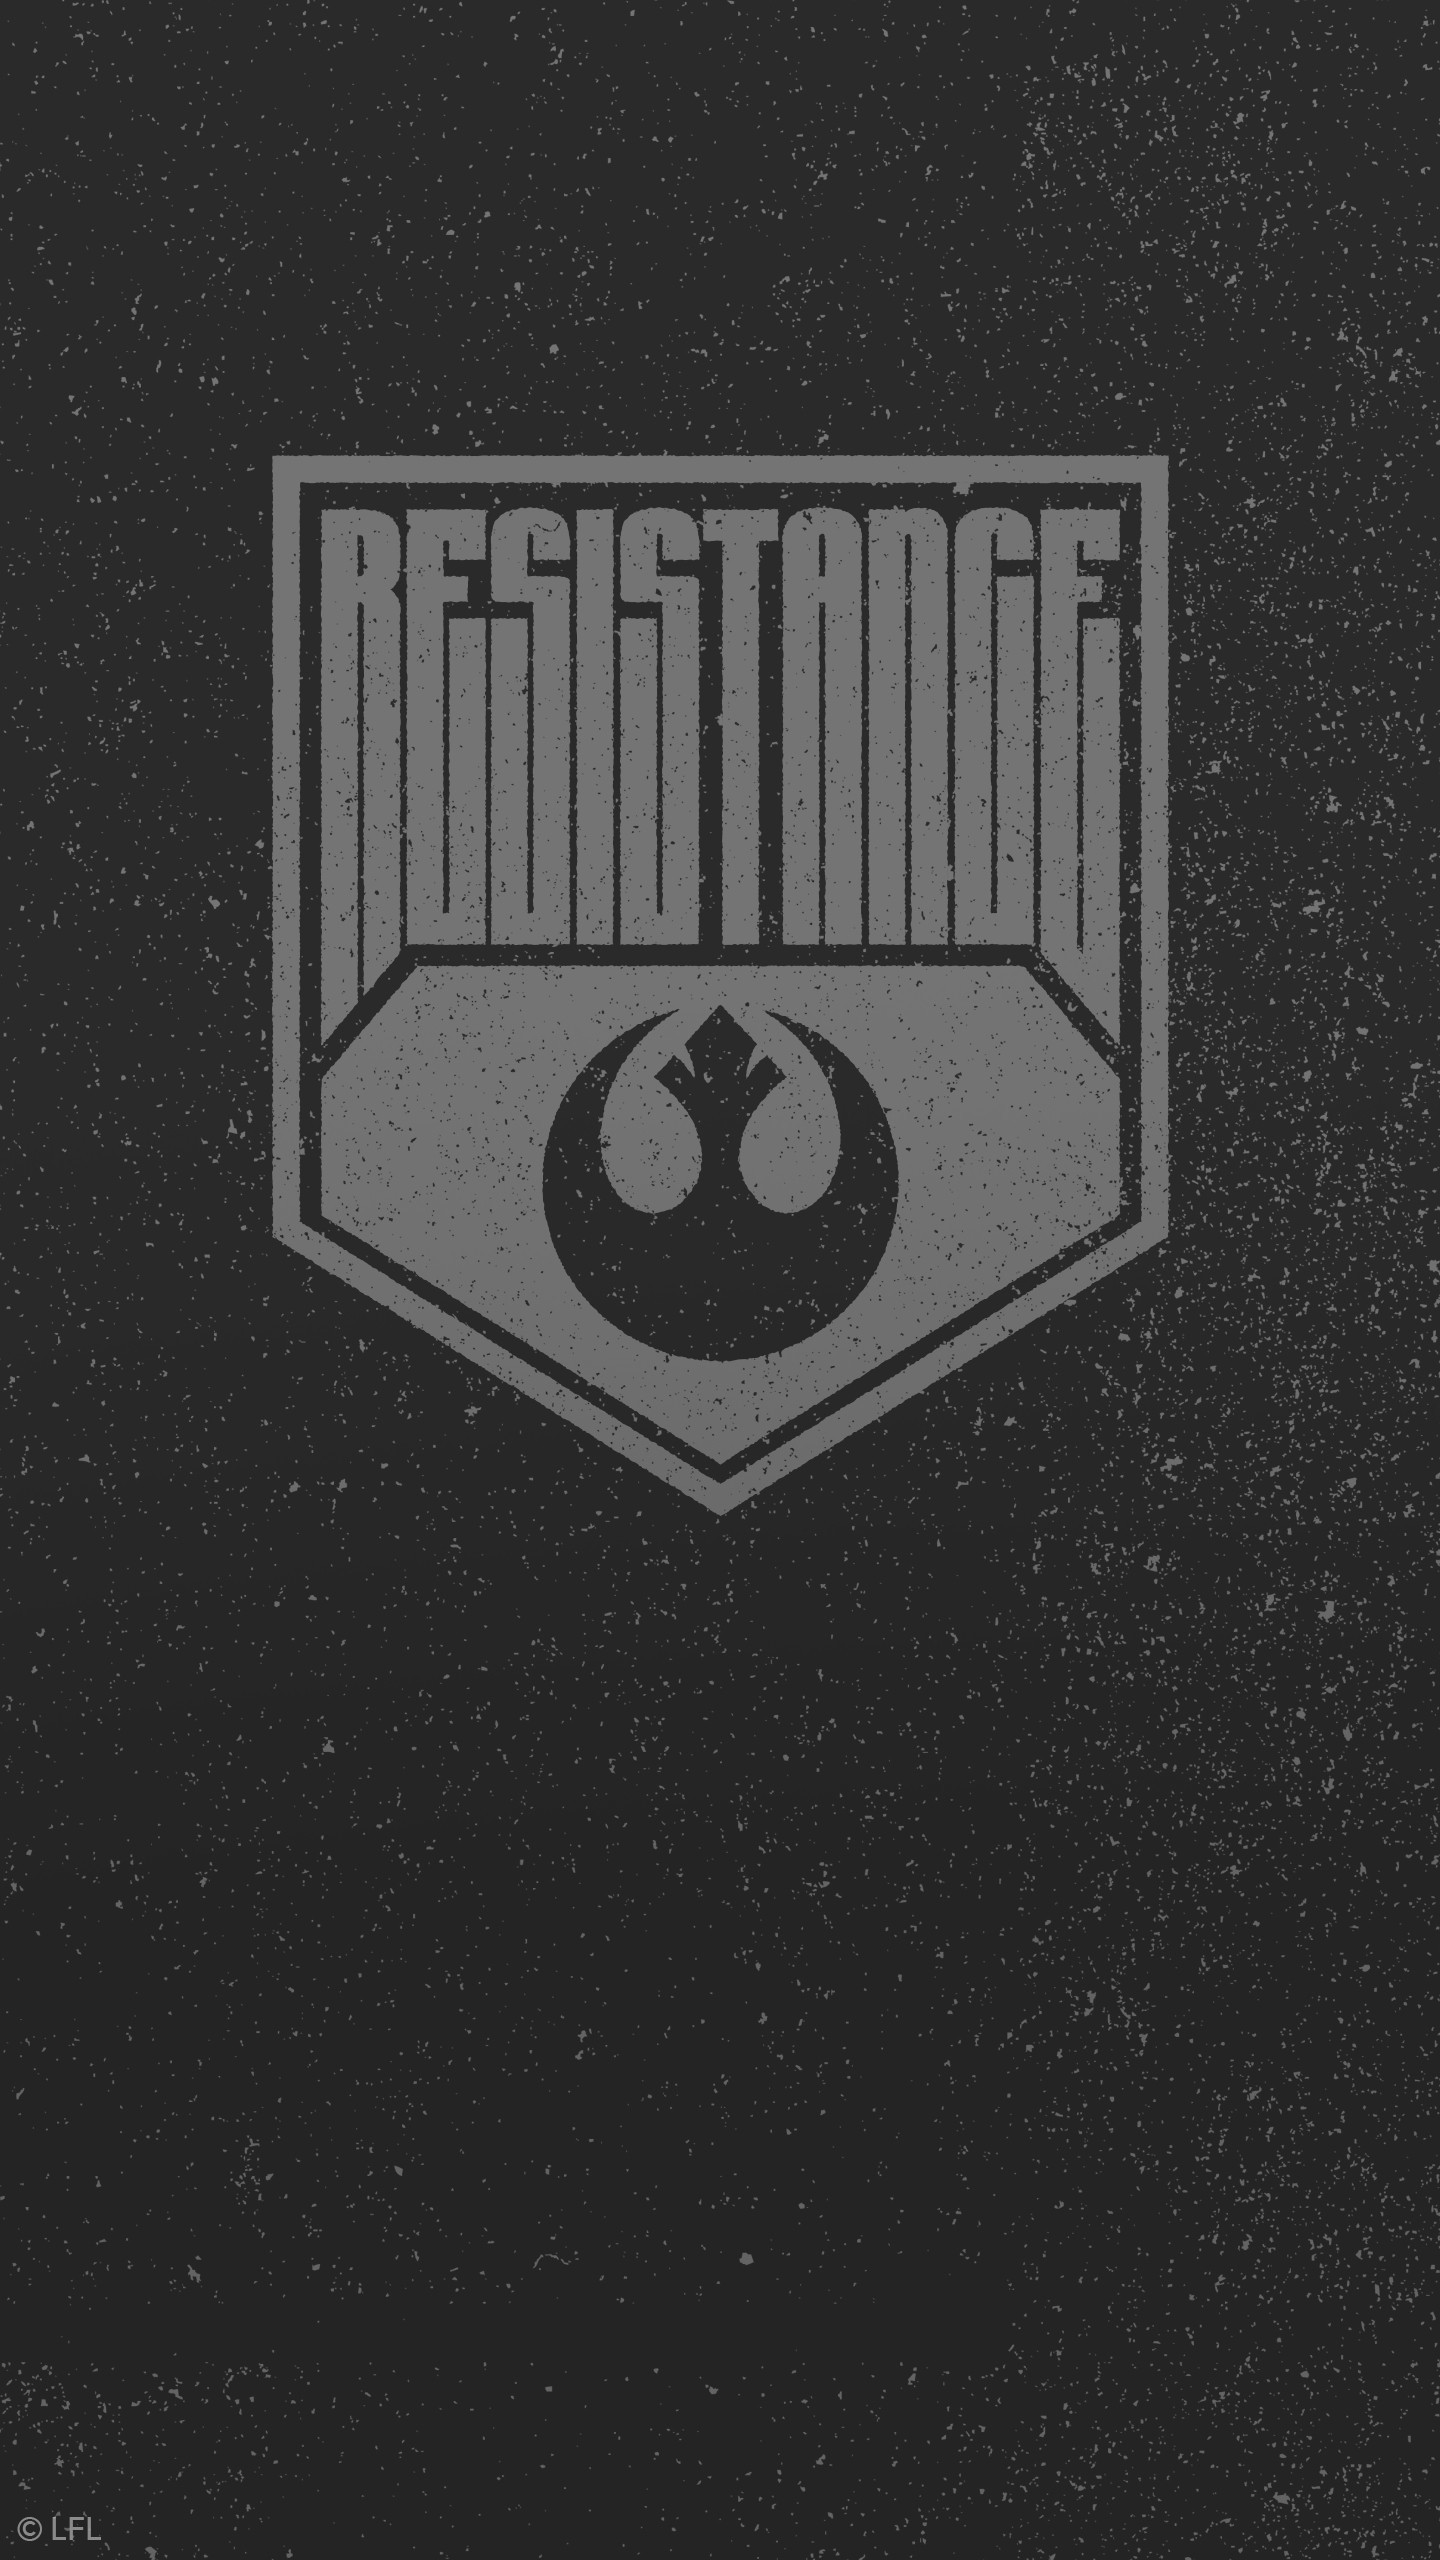 Live Star Wars Wallpaper Posted By Christopher Peltier